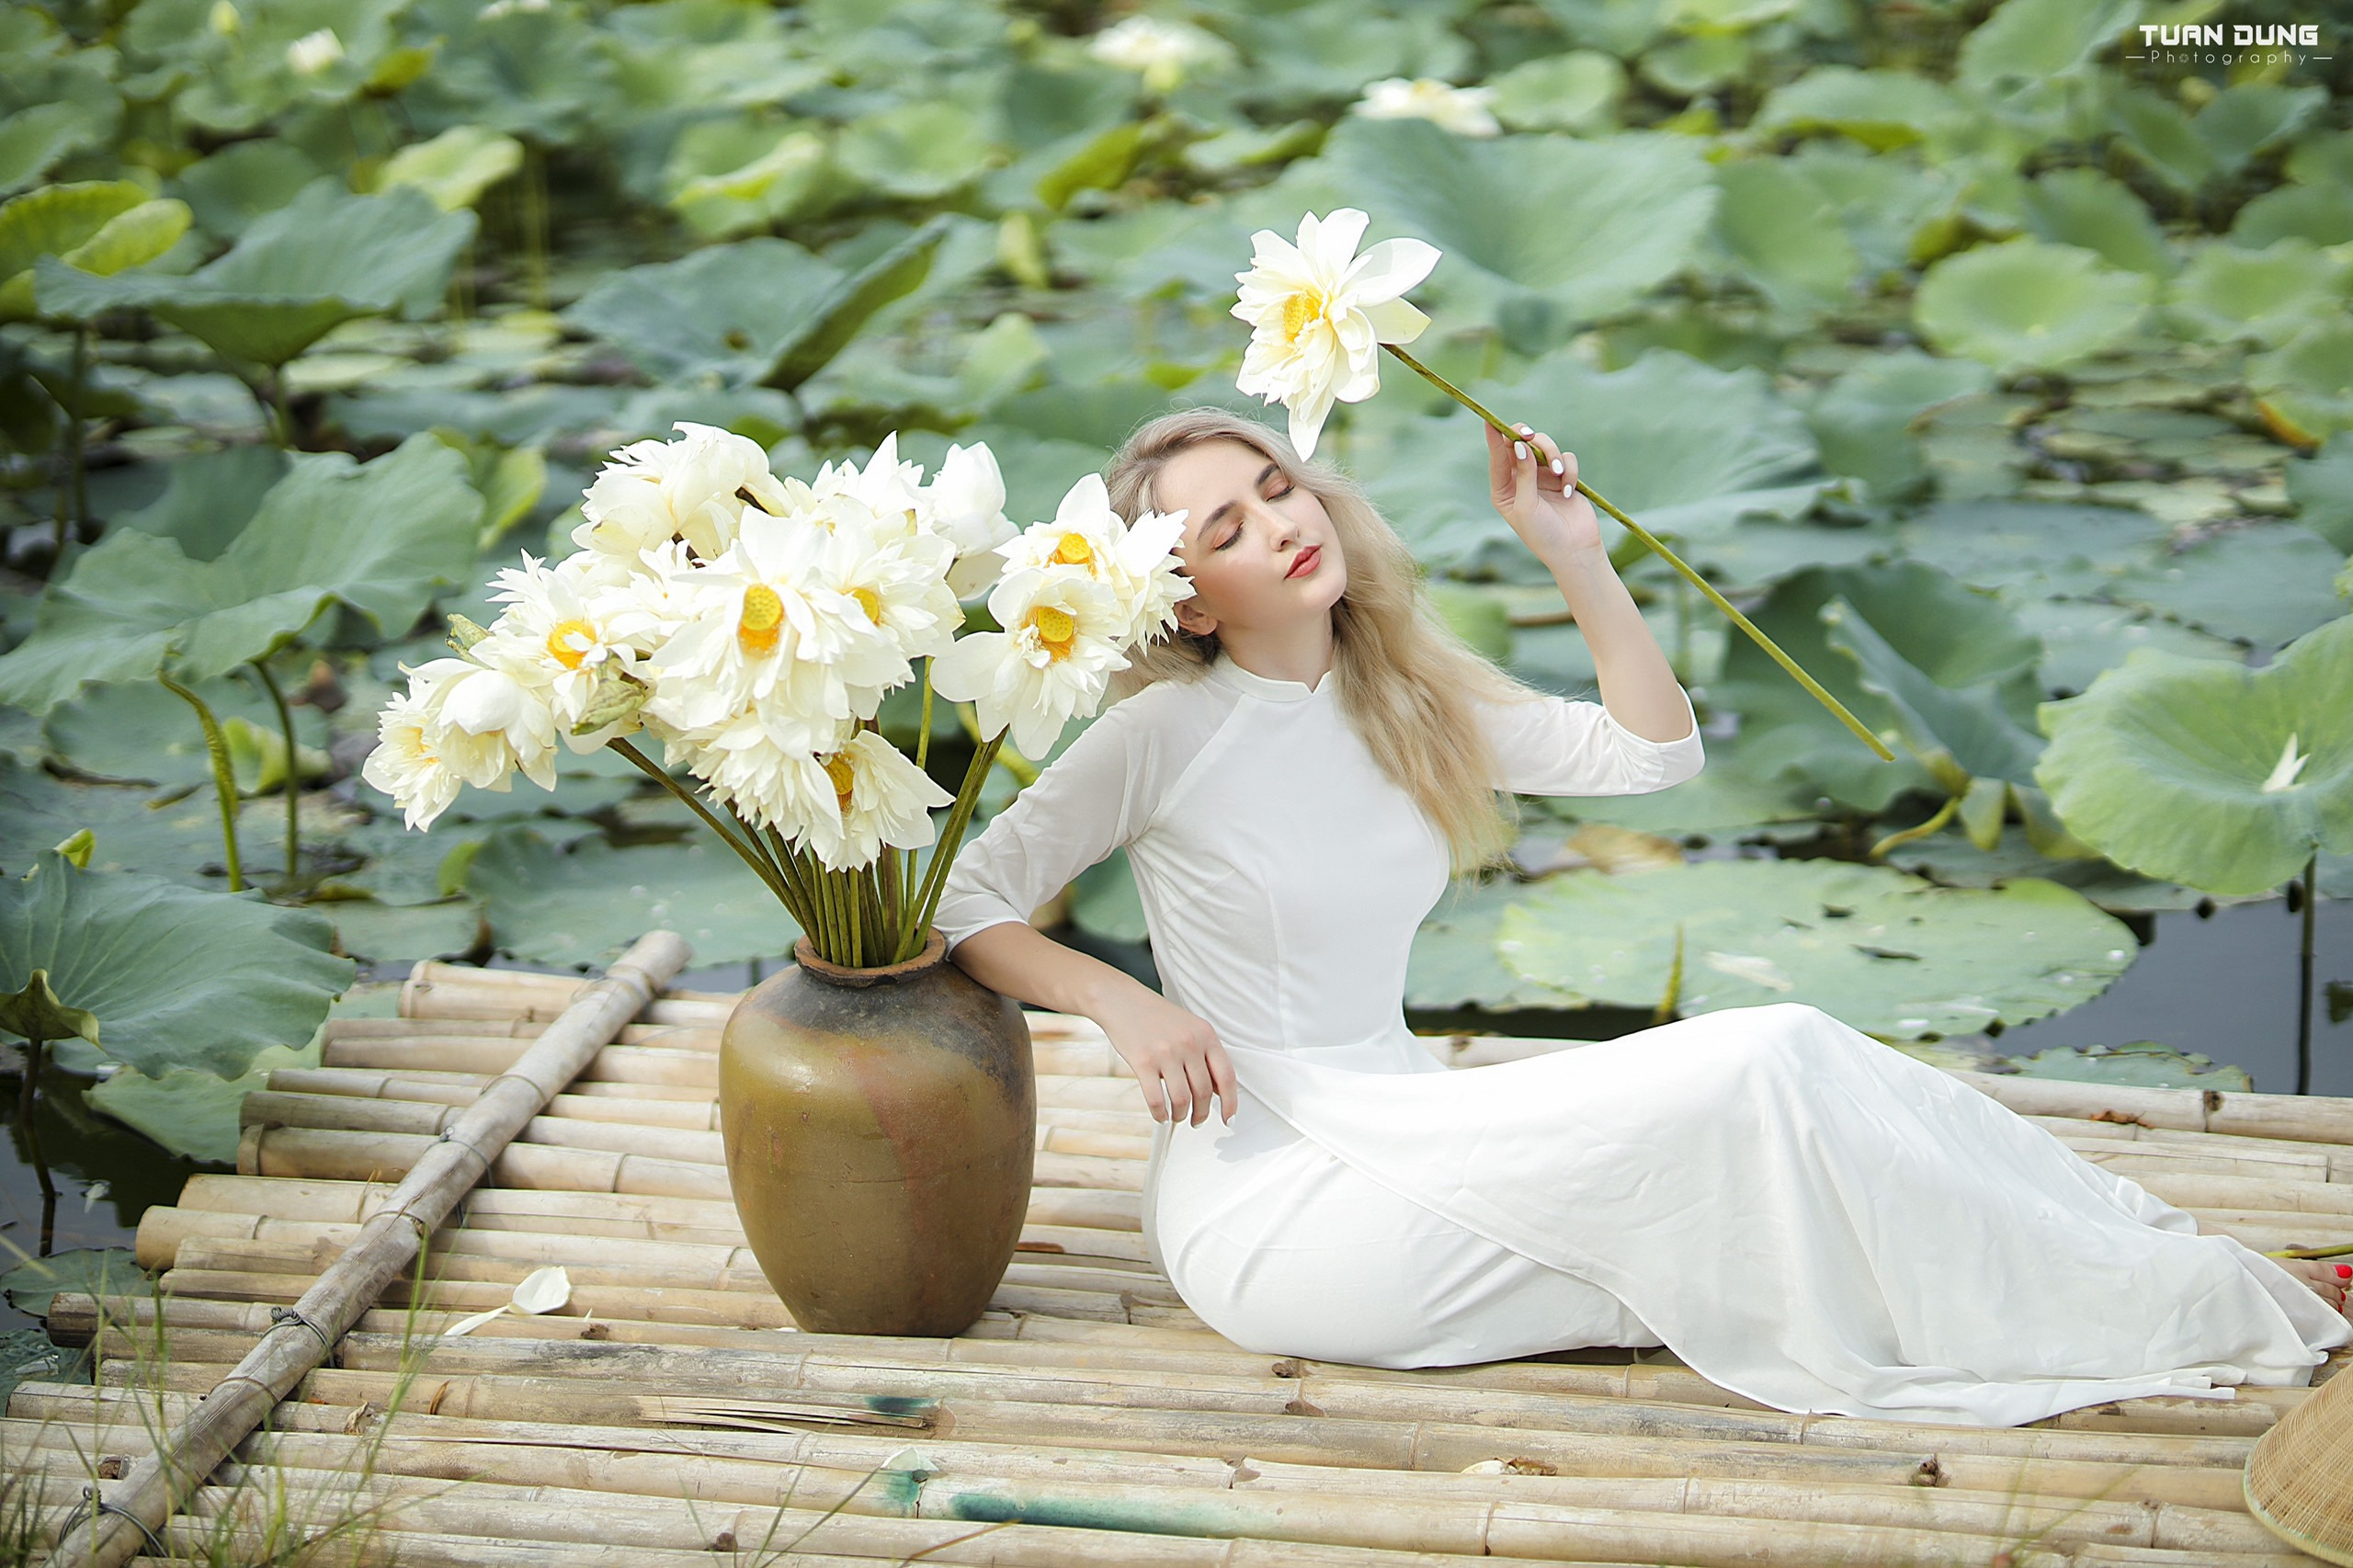 Ao dai, culture and students: Albanian Tik Tok star on why she calls Vietnam 'home'